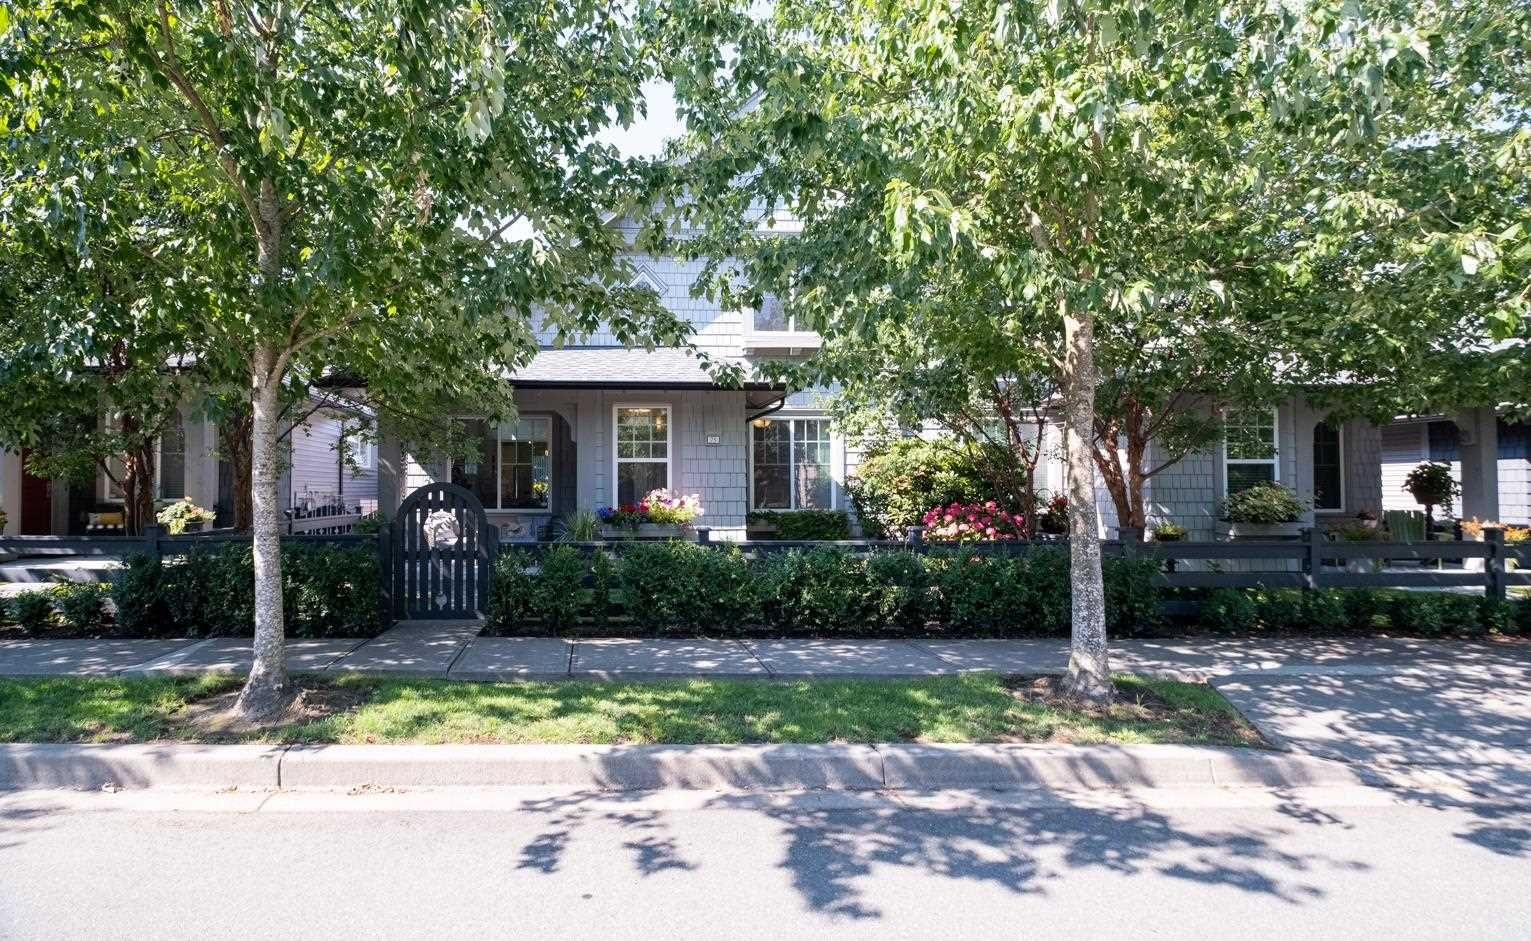 """Main Photo: 75 6450 187 Street in Surrey: Cloverdale BC Townhouse for sale in """"Mosaic"""" (Cloverdale)  : MLS®# R2598352"""